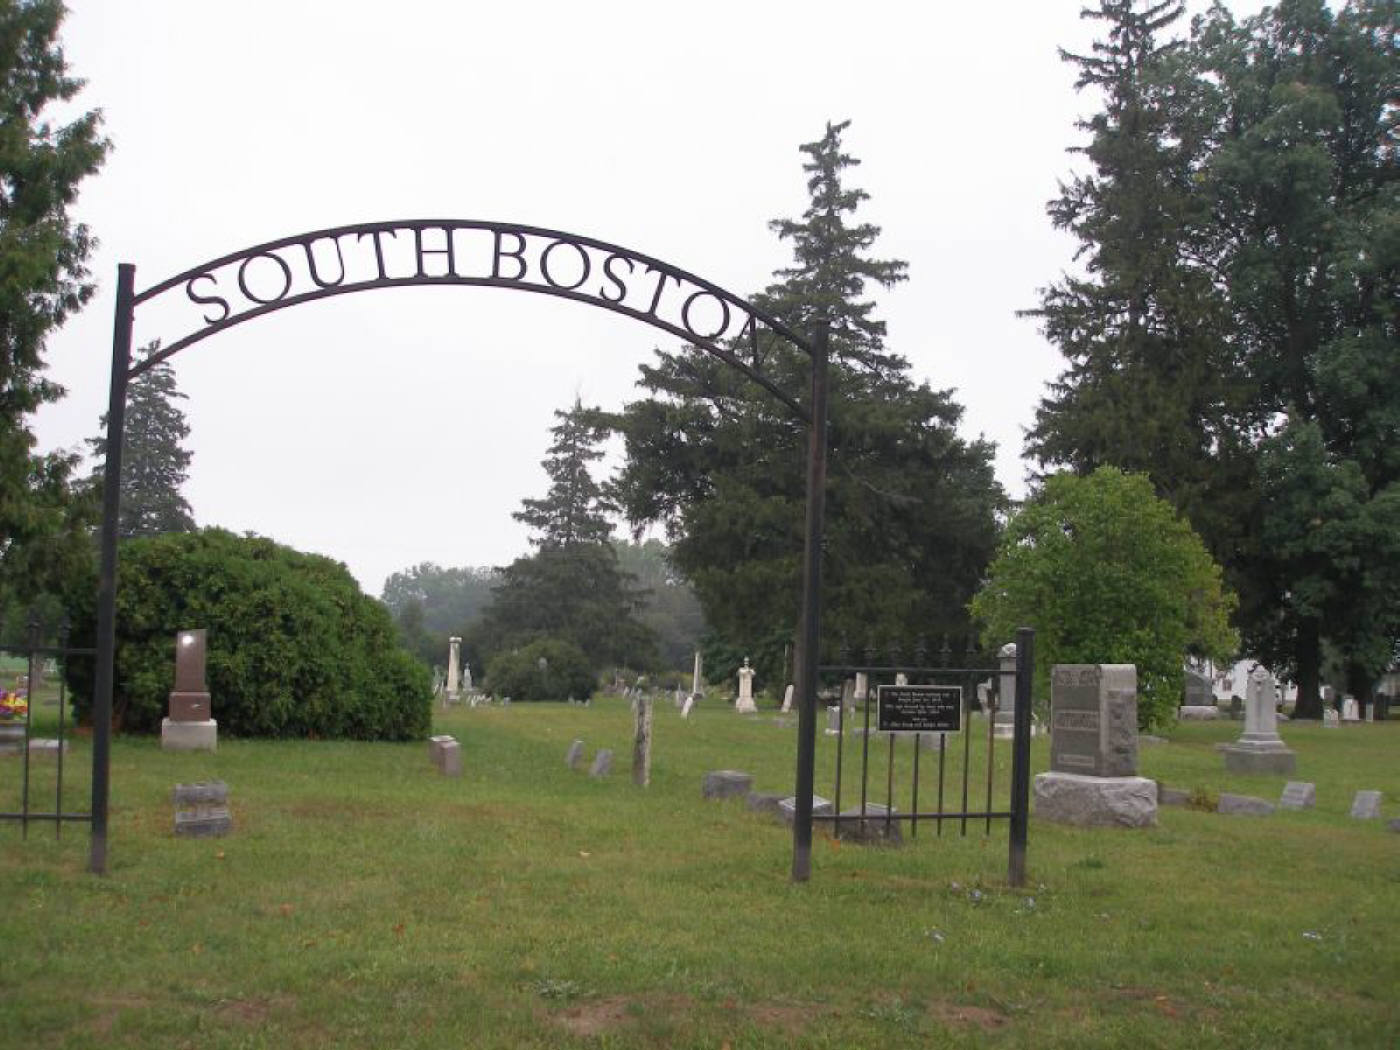 South Boston Cemetery